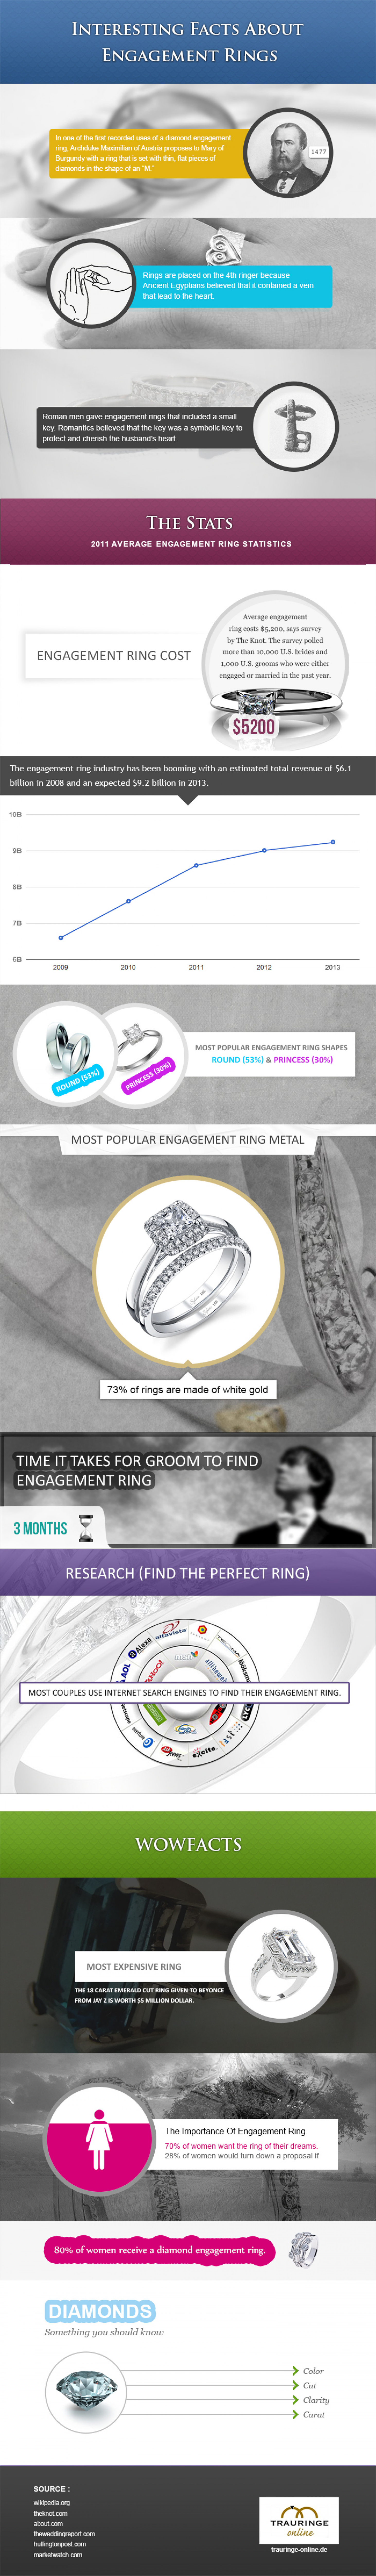 Interesting Facts About Engagement Rings Infographic